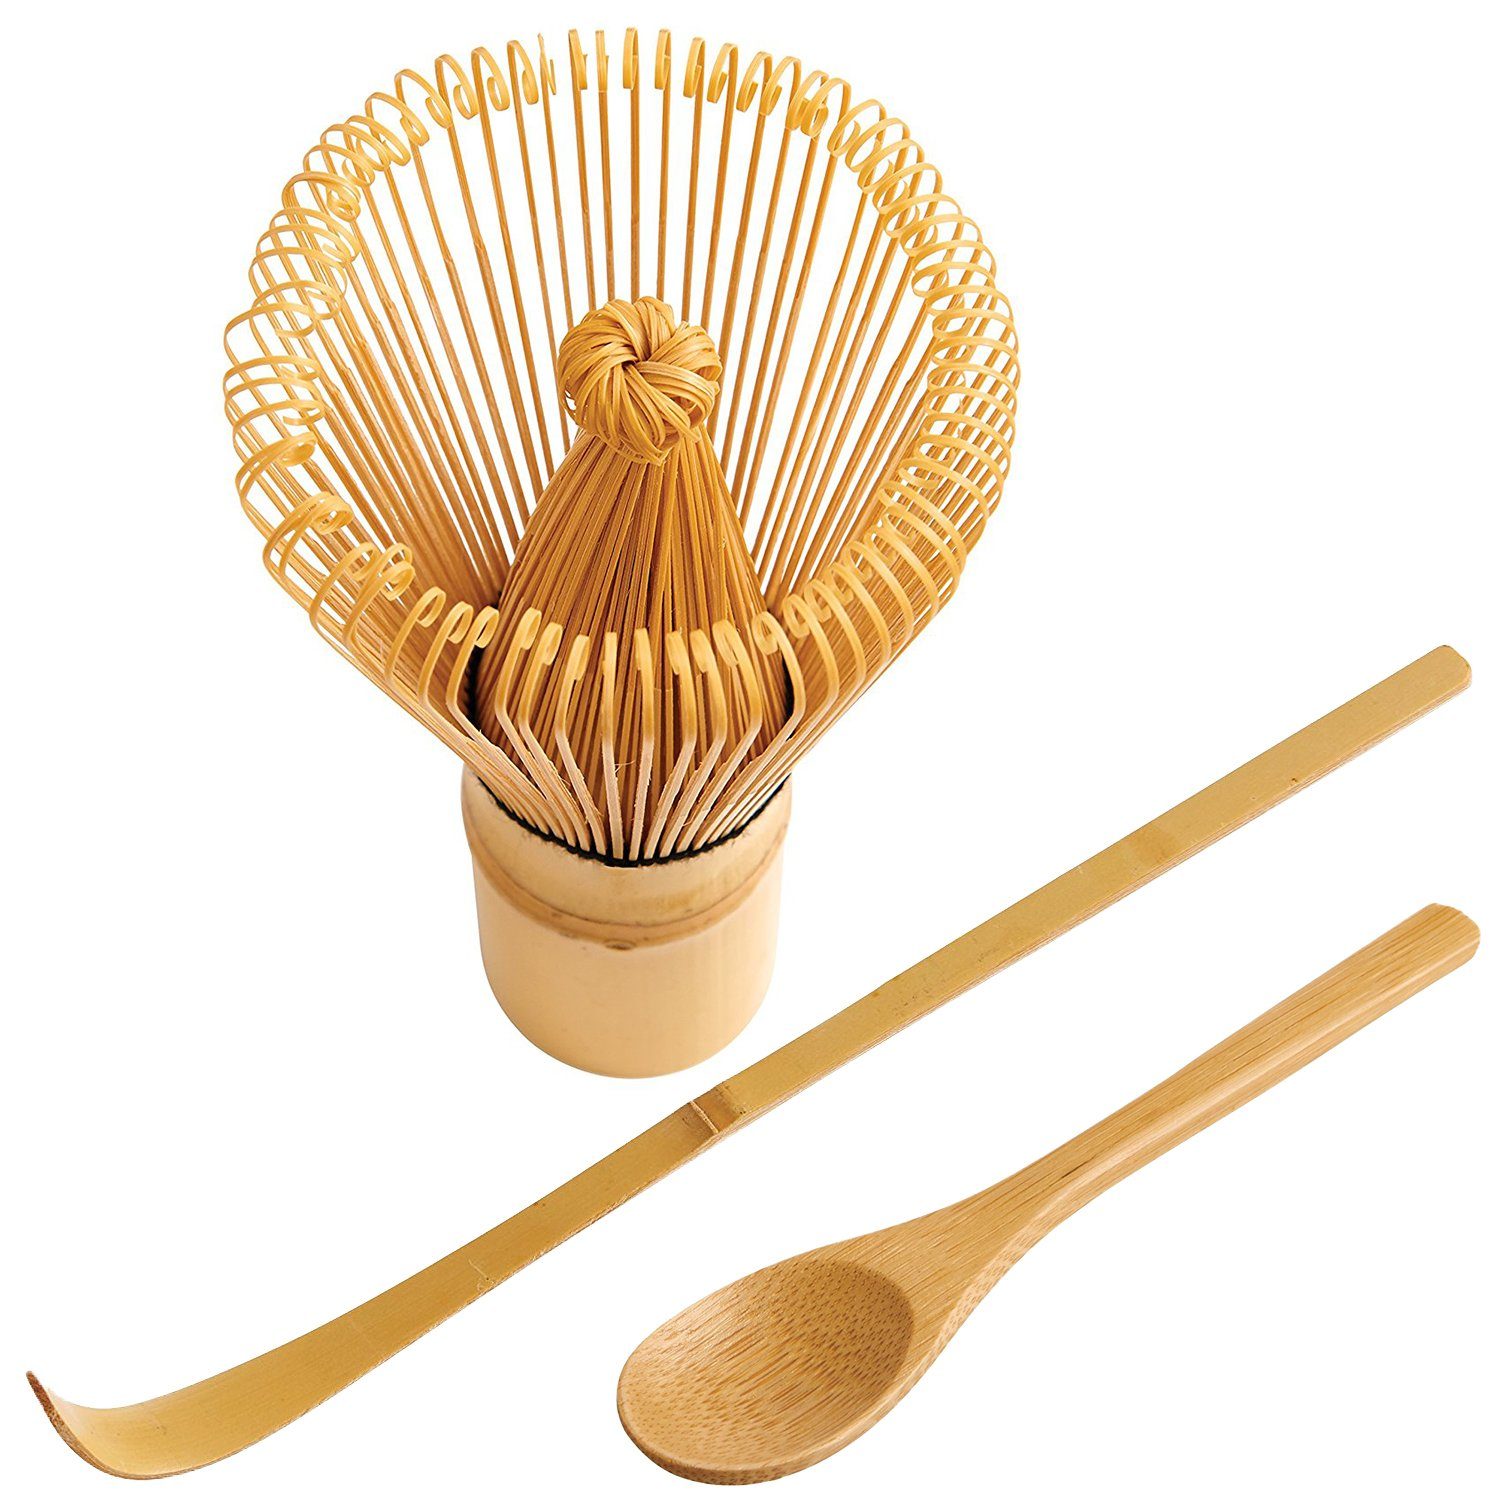 Matcha Whisk Sets - Hand-Made Natural Bamboo Tea Whisk Set Matcha Chasen with Tea Spoon, Traditional Scoop (Chashaku) kitchen-tea